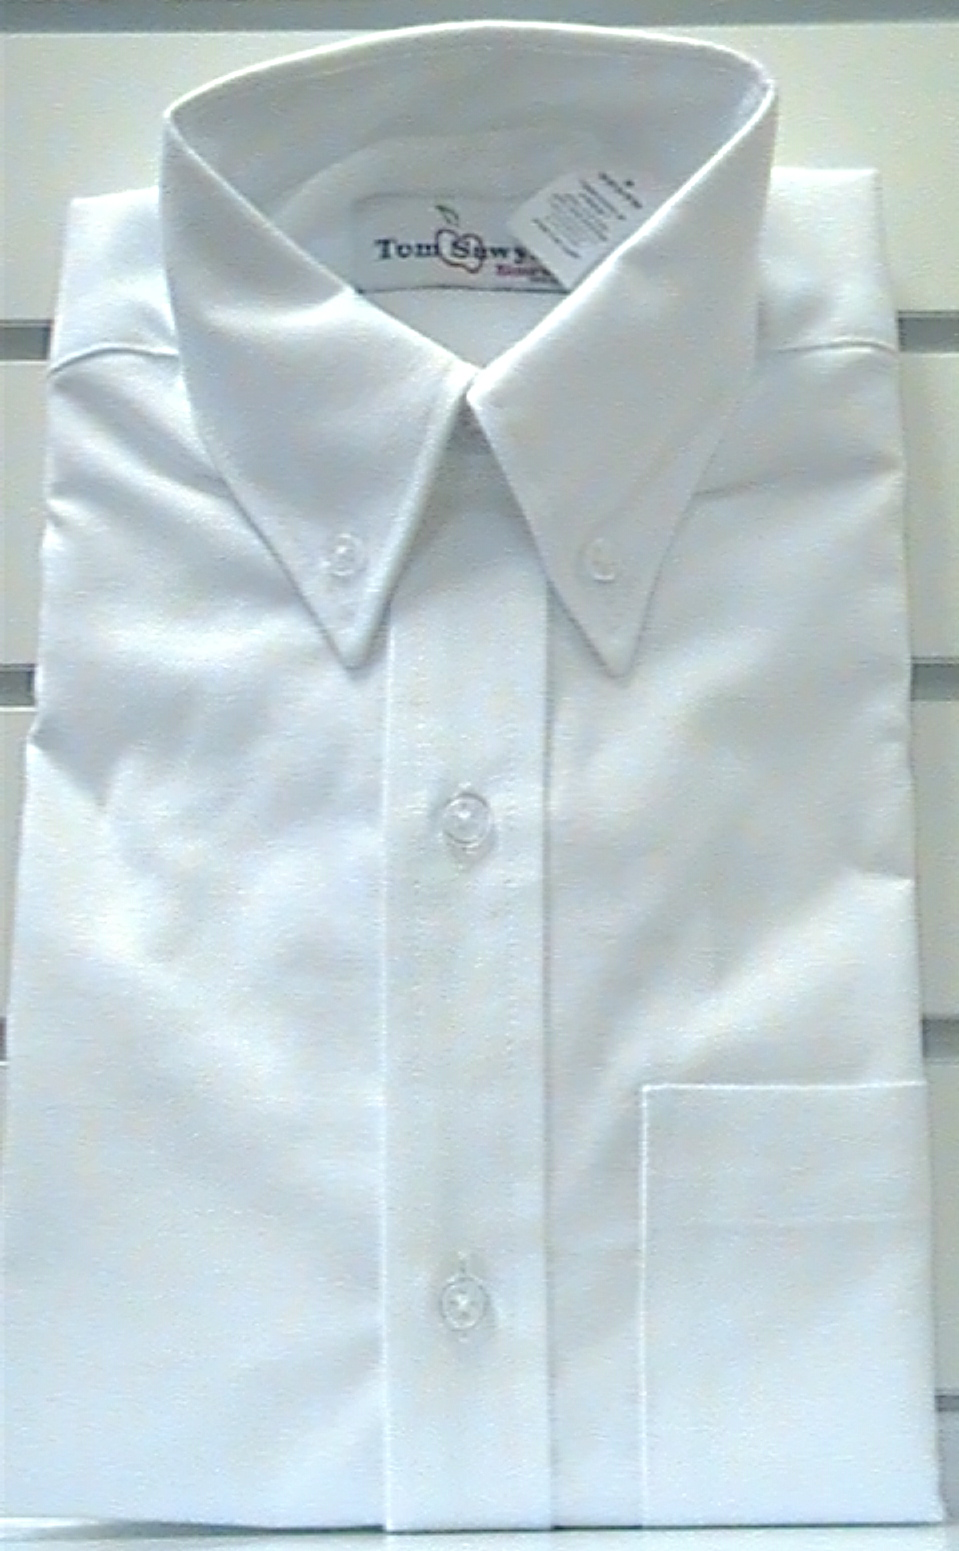 WhiteShort SleeveOxfordcloth Buttondown Collar Shirt